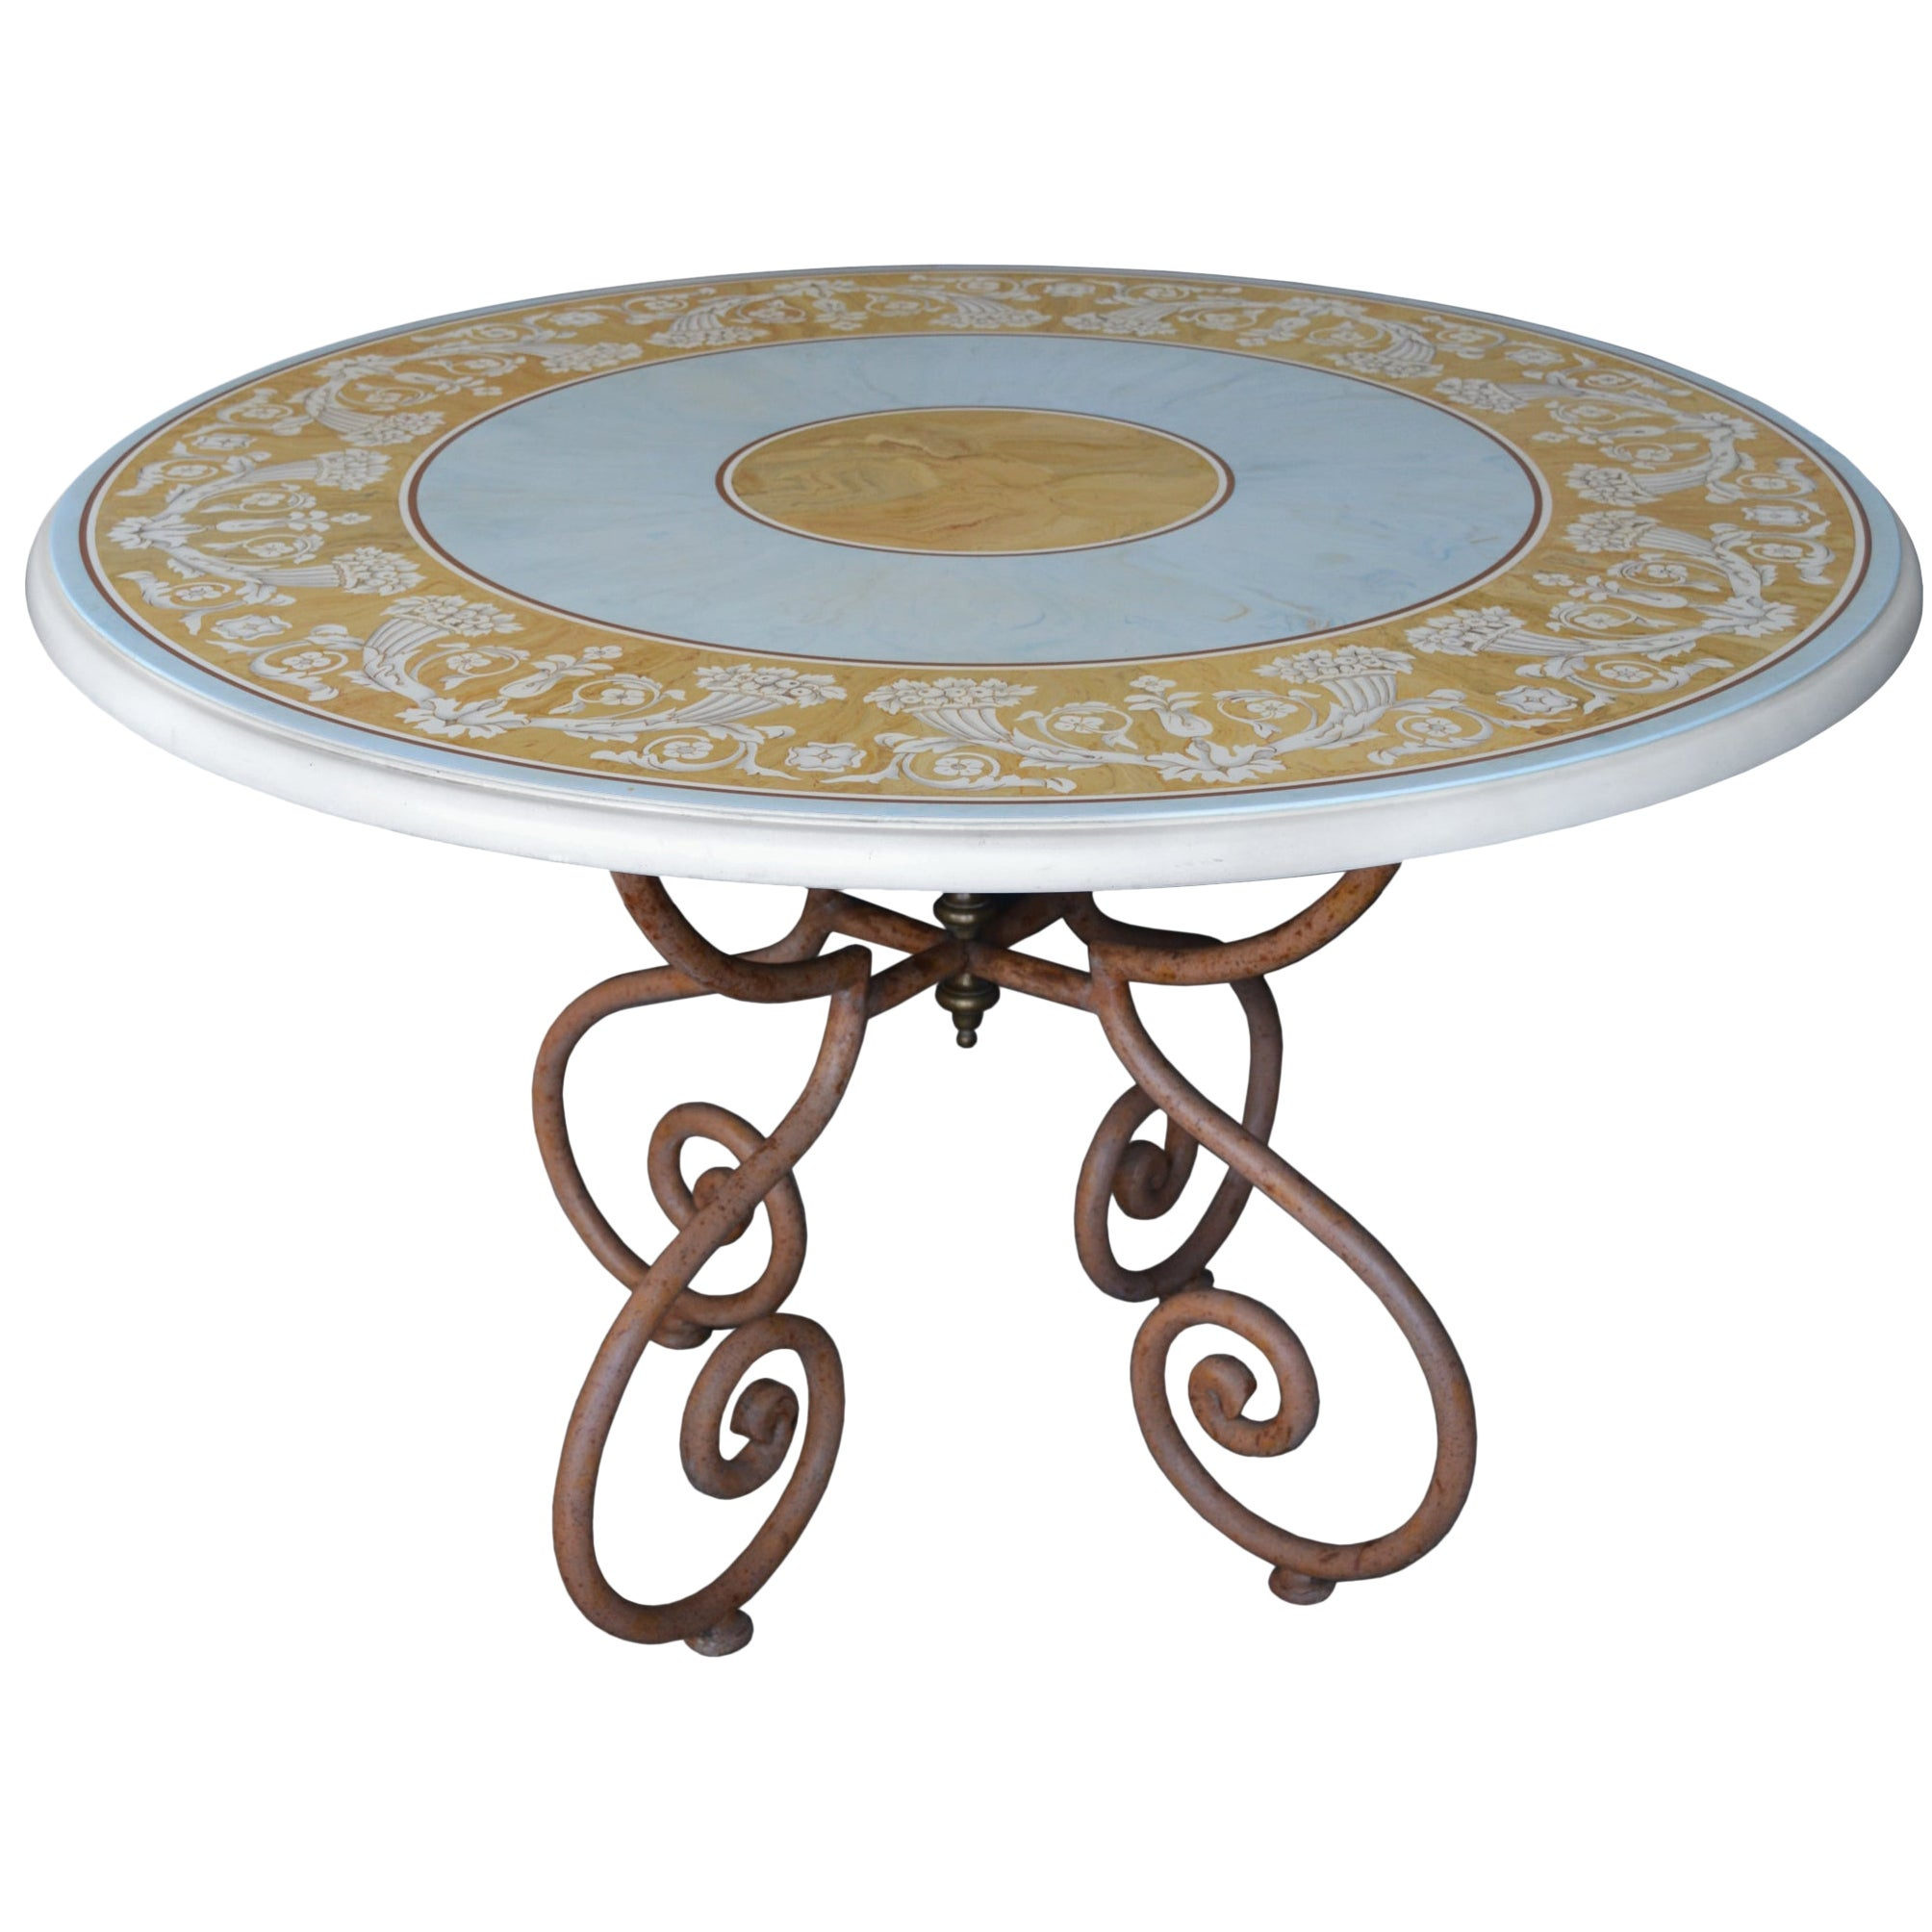 Round Classic Dining Table light blue Scagliola Art Inlay Wrought Iron Base